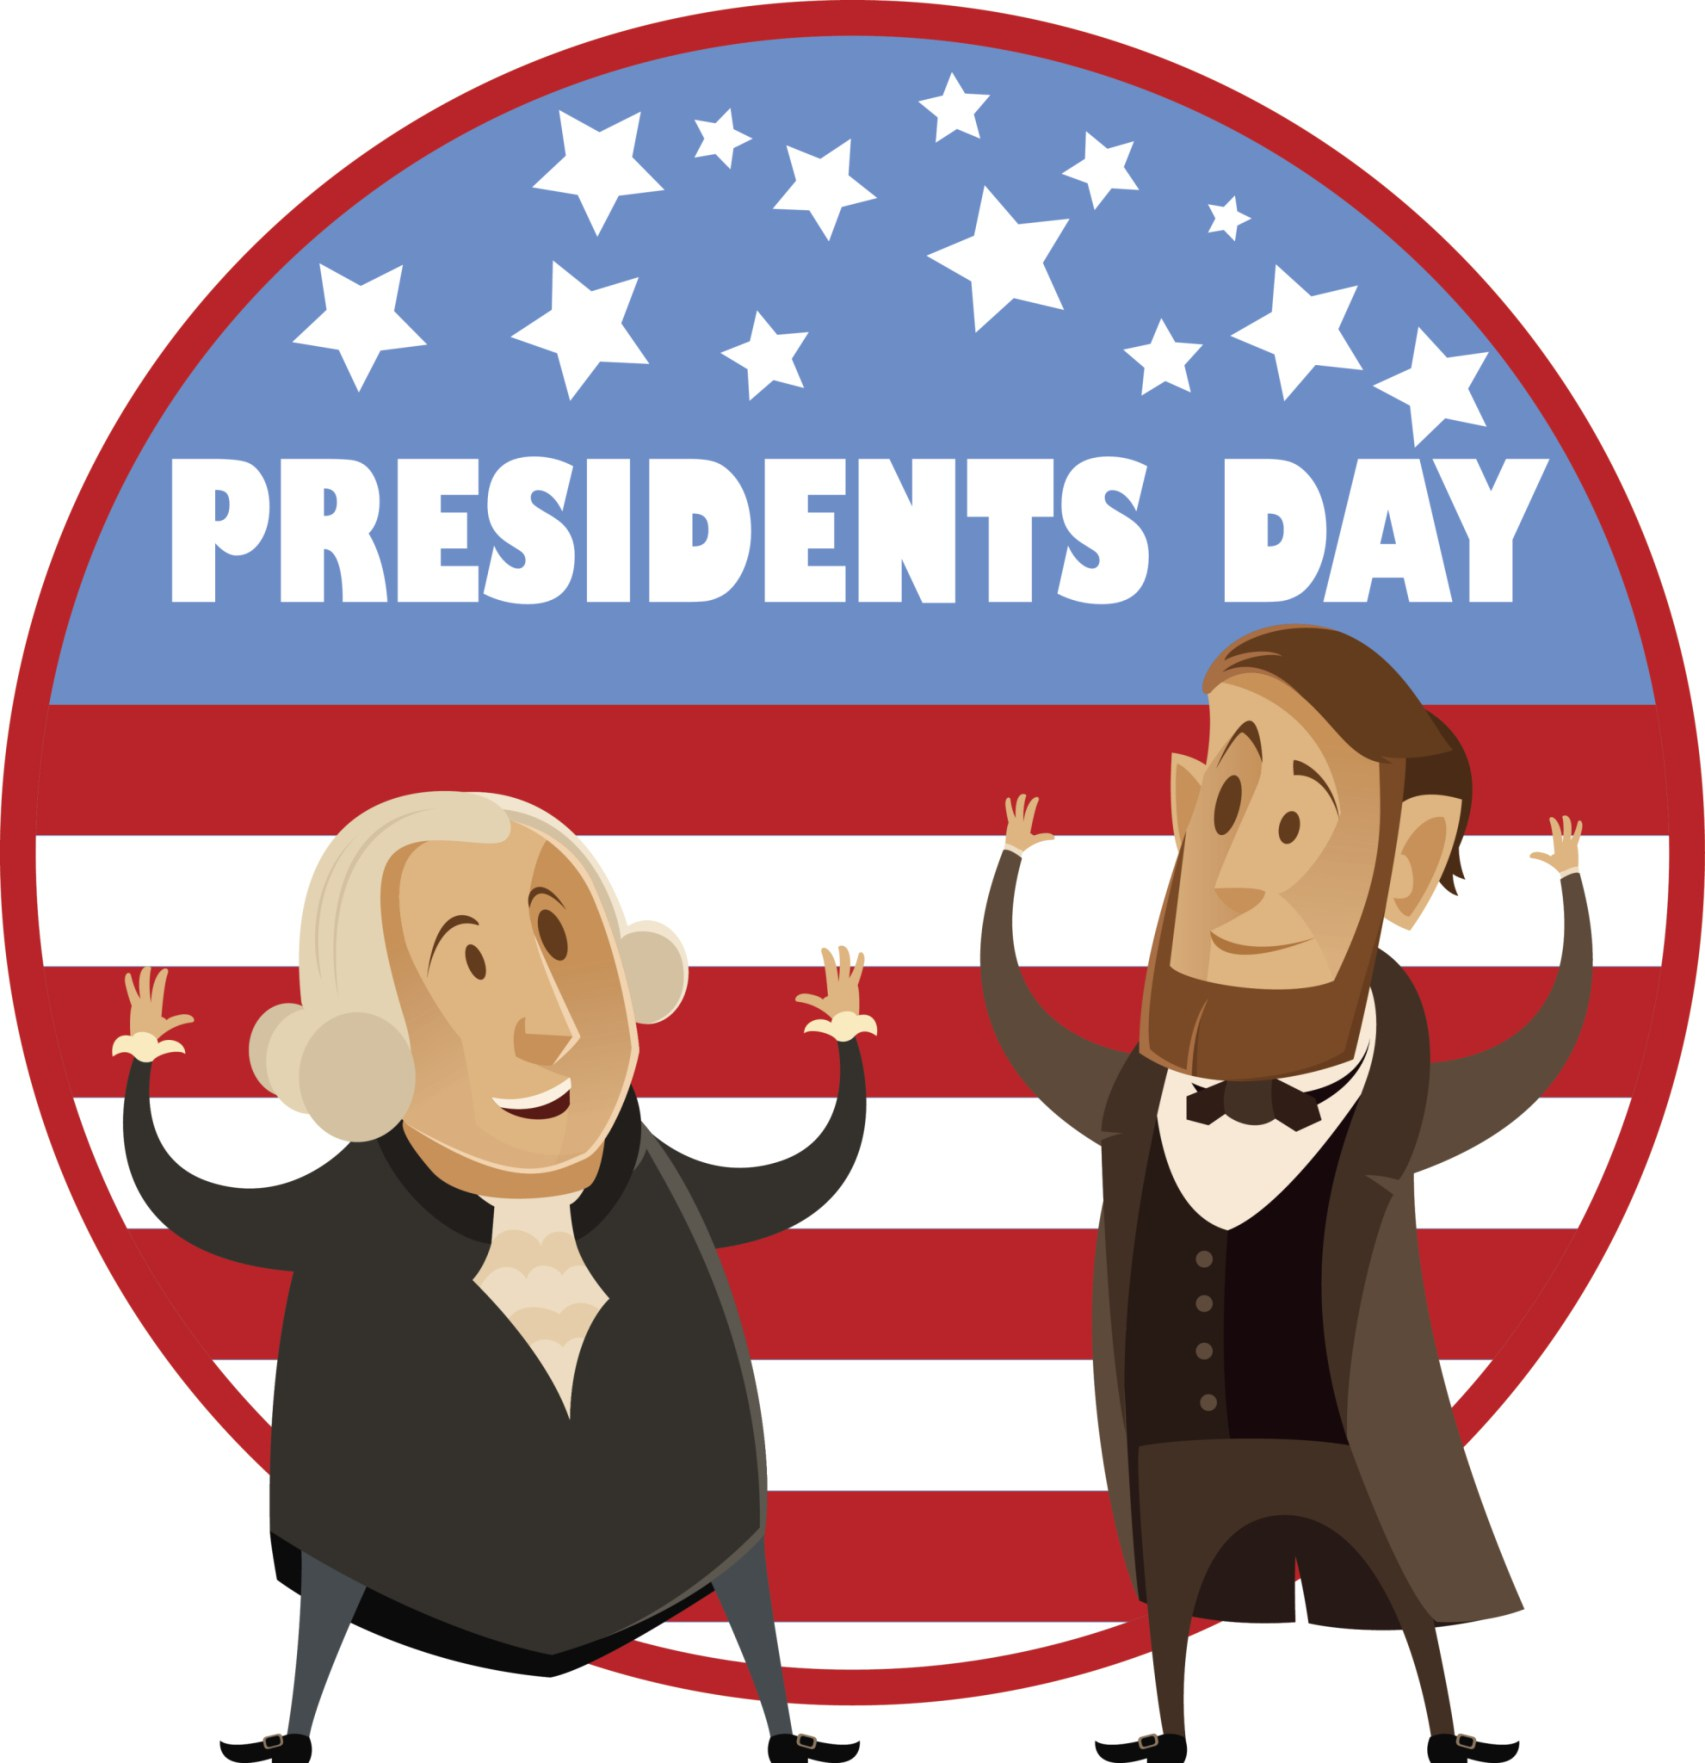 Kirkwood public library with. 2018 clipart presidents day